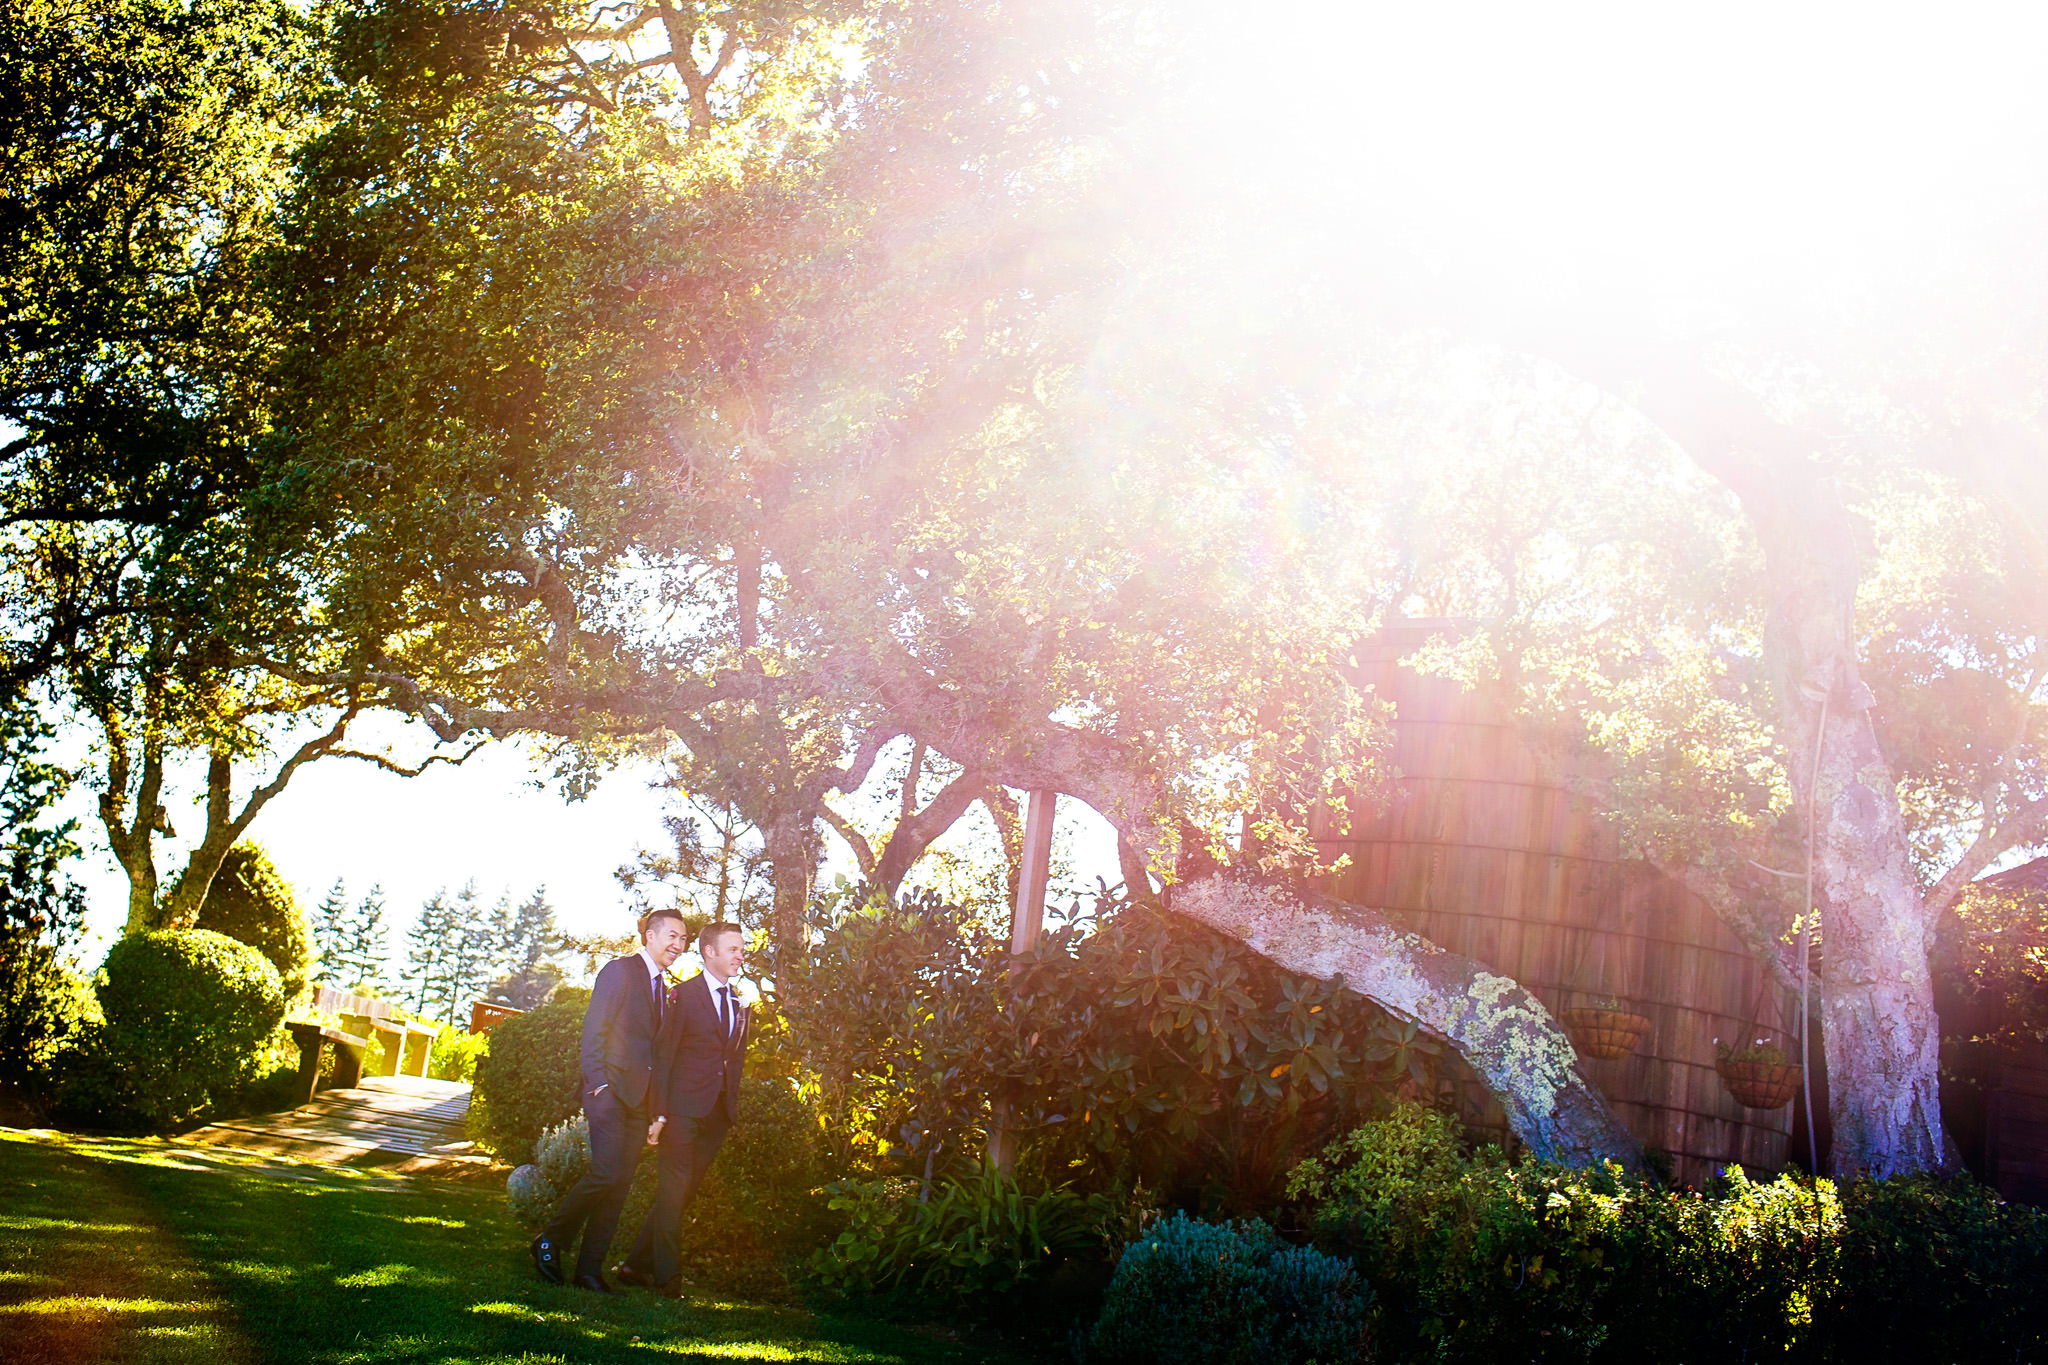 Chris and Daniel's wedding at Thomas Fogarty Winery in Woodside, CA.